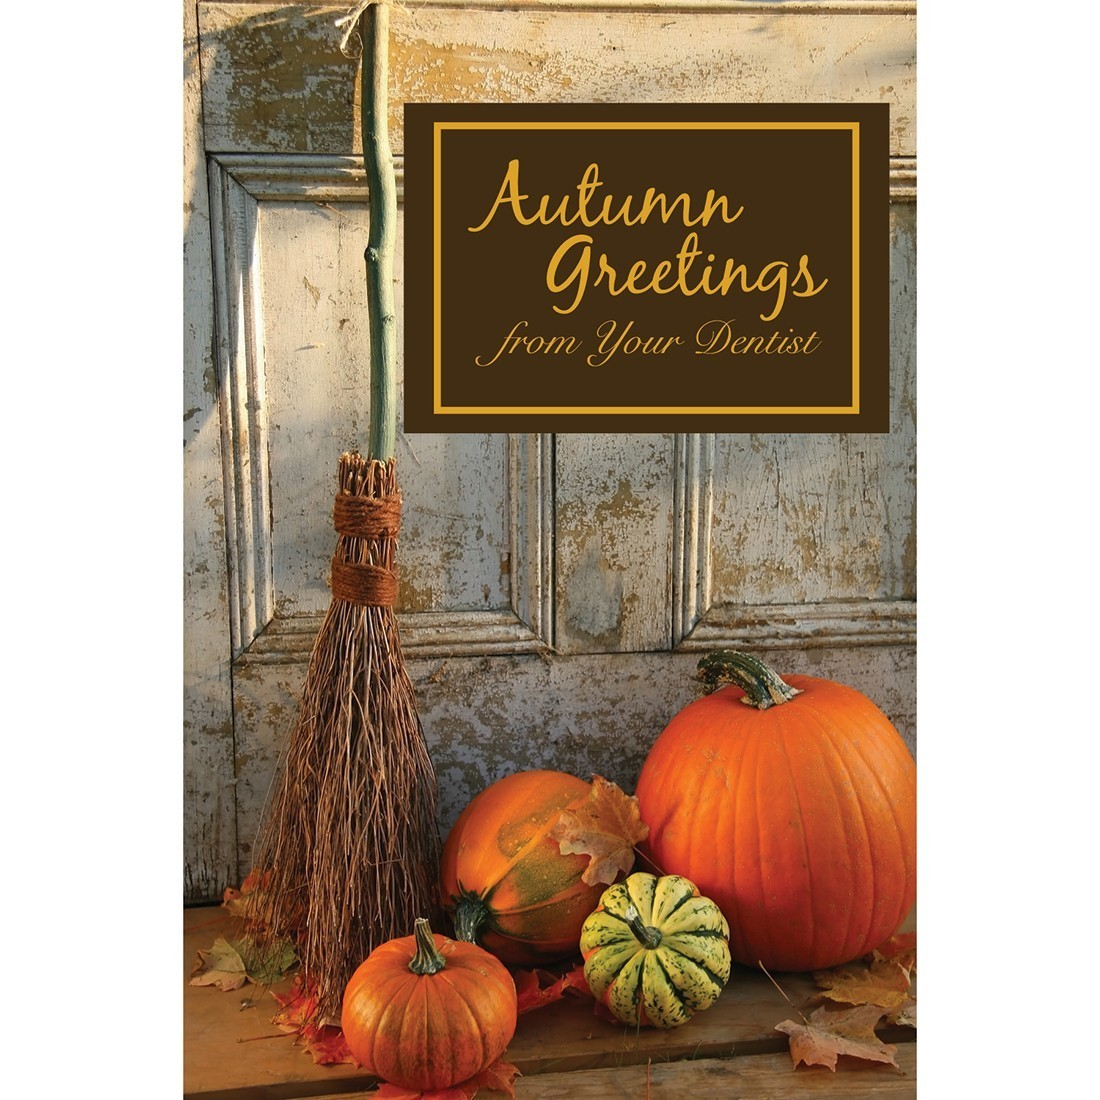 Autumn Greetings Greeting Cards [image]